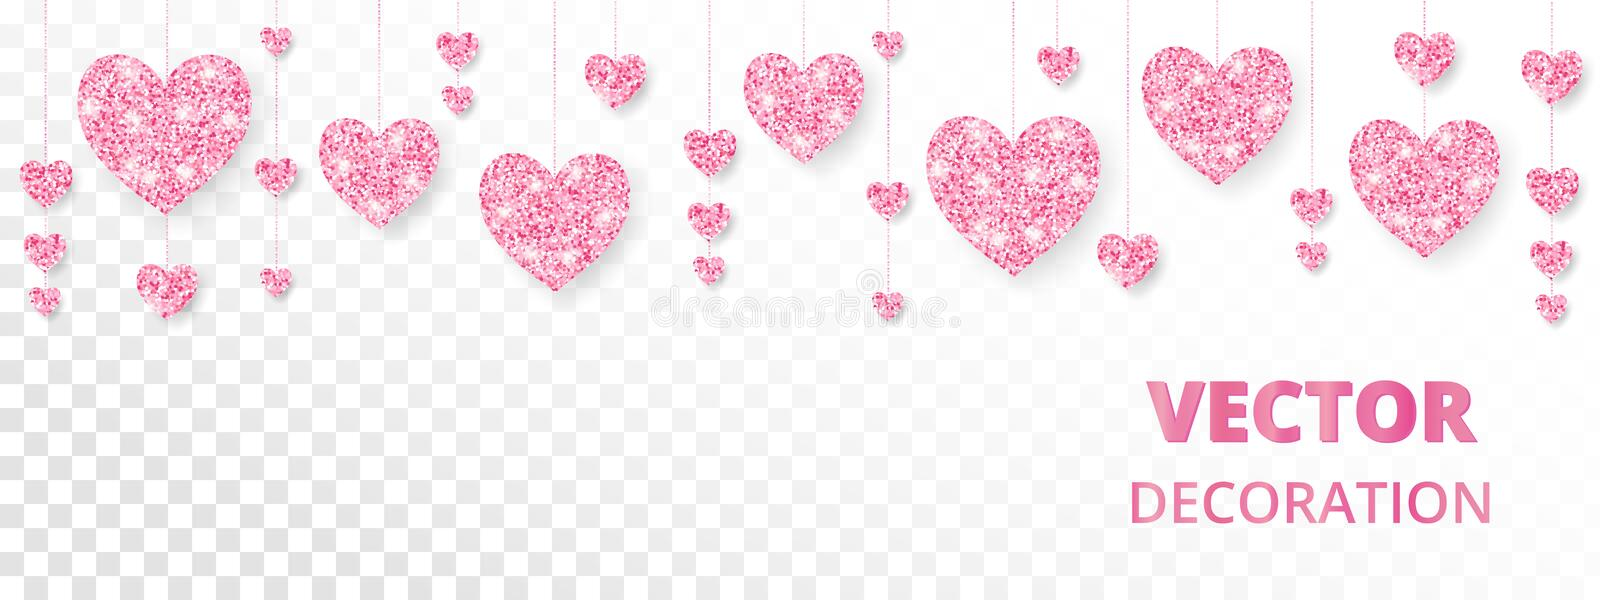 Pink hearts frame, border. Vector glitter isolated on white. For Valentine and Mothers day cards, wedding invitations. royalty free illustration